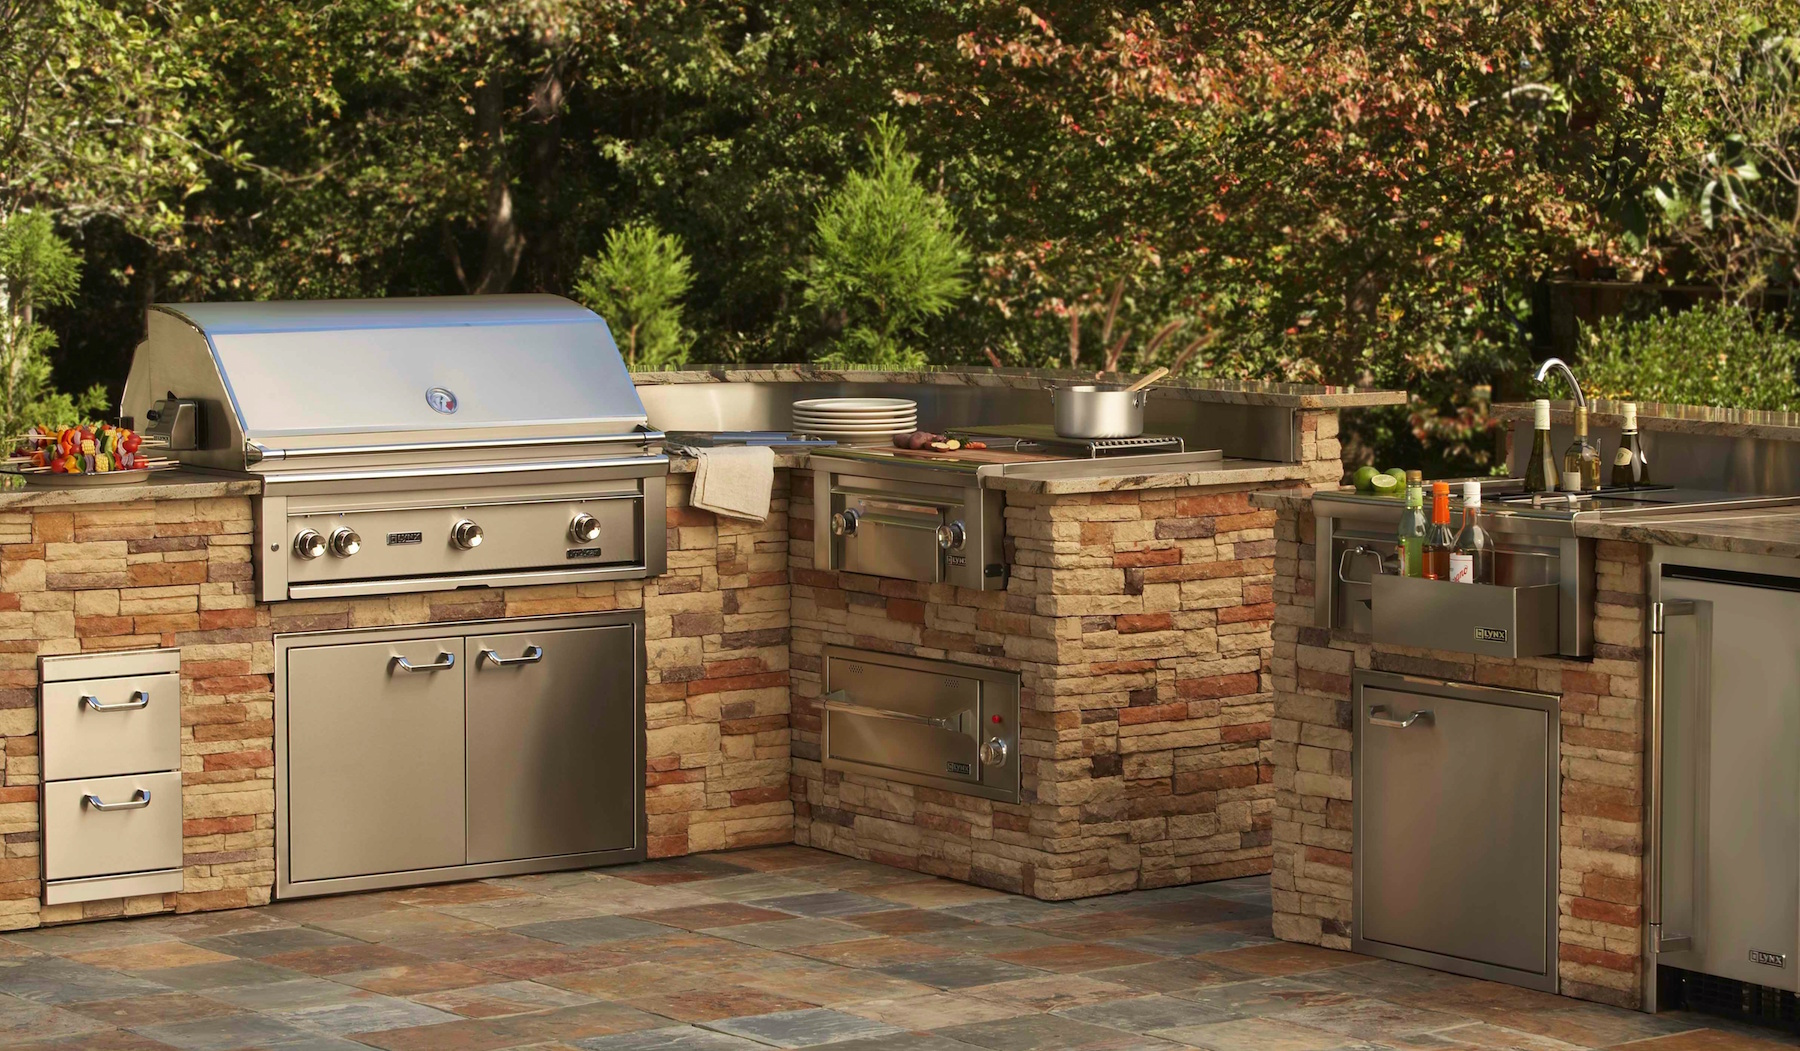 Choosing a professional barbecue grill for your outdoor for Outdoor kitchen bbq designs